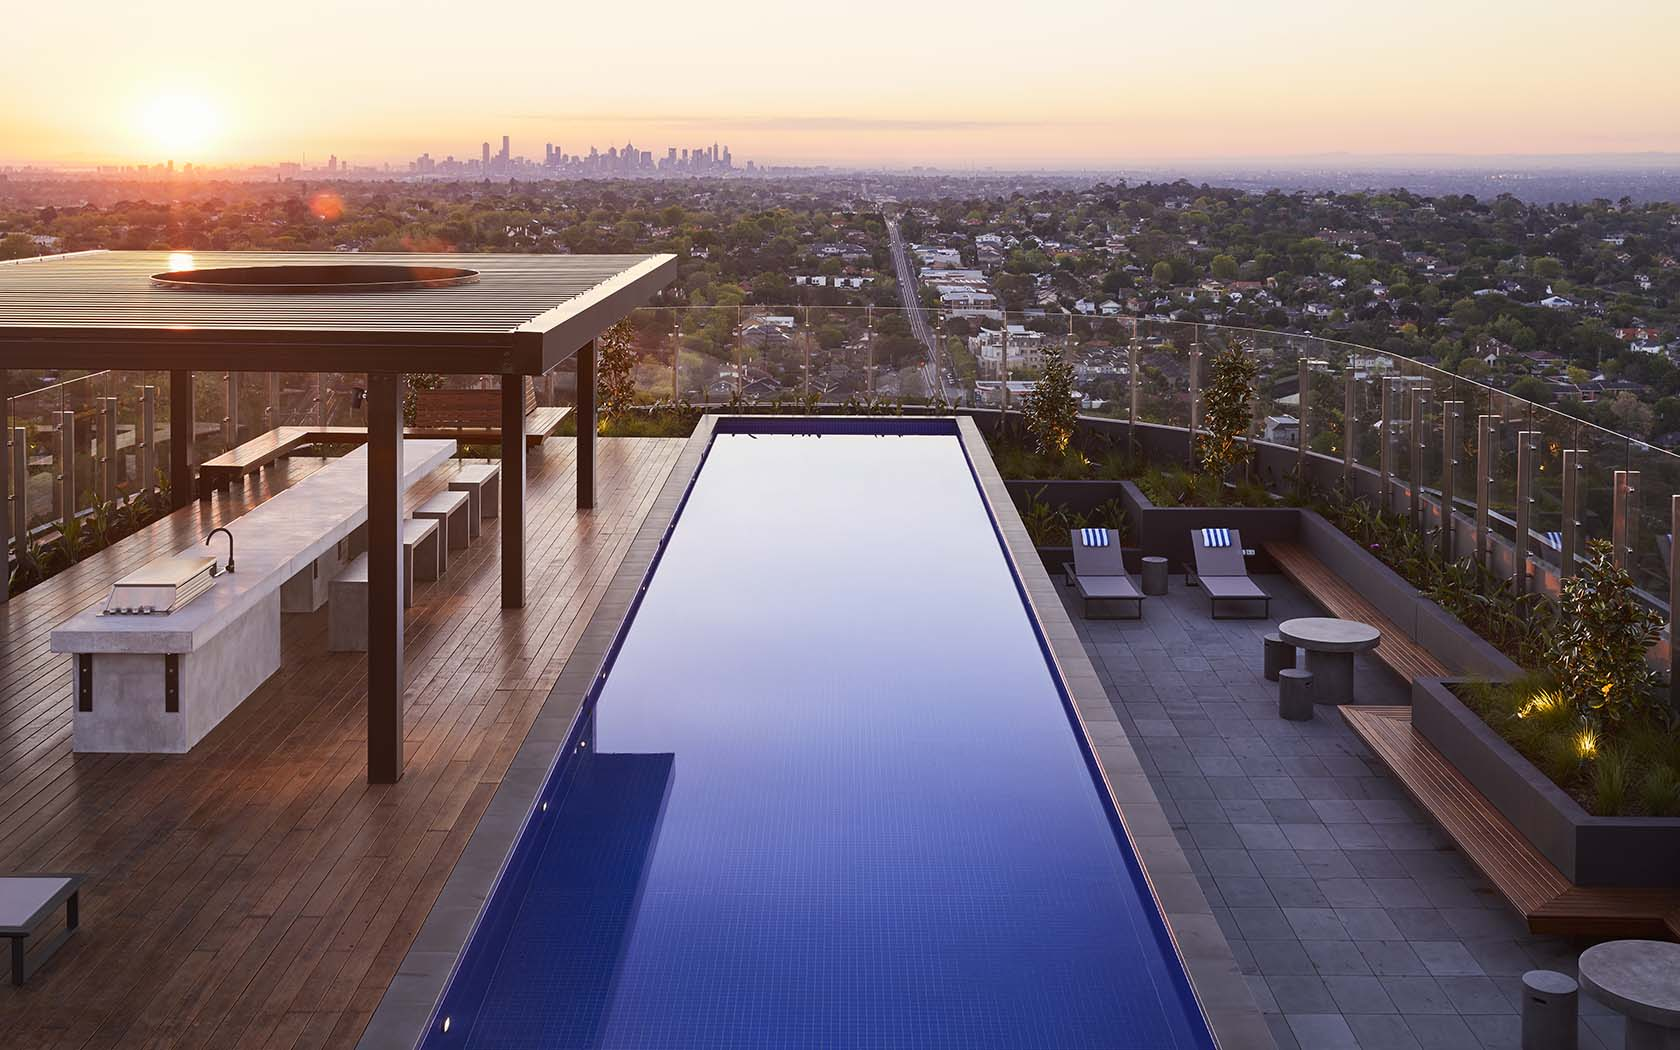 Australia S Art Series Hotels Have Carved Out A Place For Themselves As Unexpected Champions Of Aussie With Sleek Boutique Properties Inspired By The